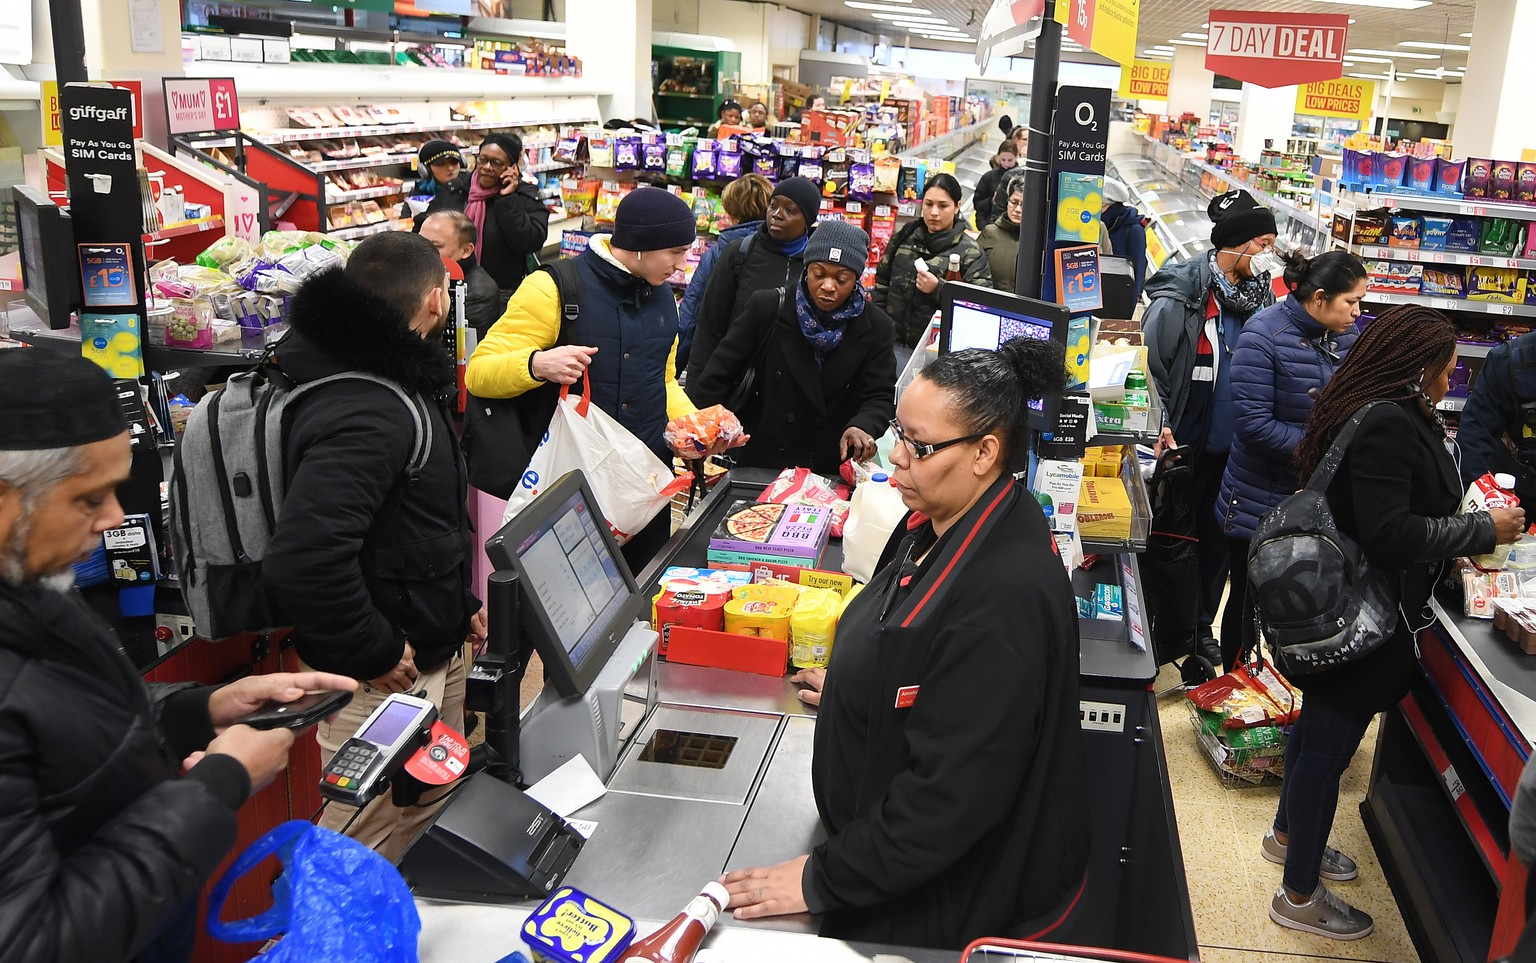 epa08306396 People queue at a supermarket in London, Britain, 19 March 2020. The UK's major supermarkets have requested police protection over fears coronavirus panic-buying could lead to rioting. British Prime Minister Boris Johnson has called upon the British public to avoid all social contact with others and to stop non-essential travel to mitigate the spread of the Coronavirus.  EPA/ANDY RAIN